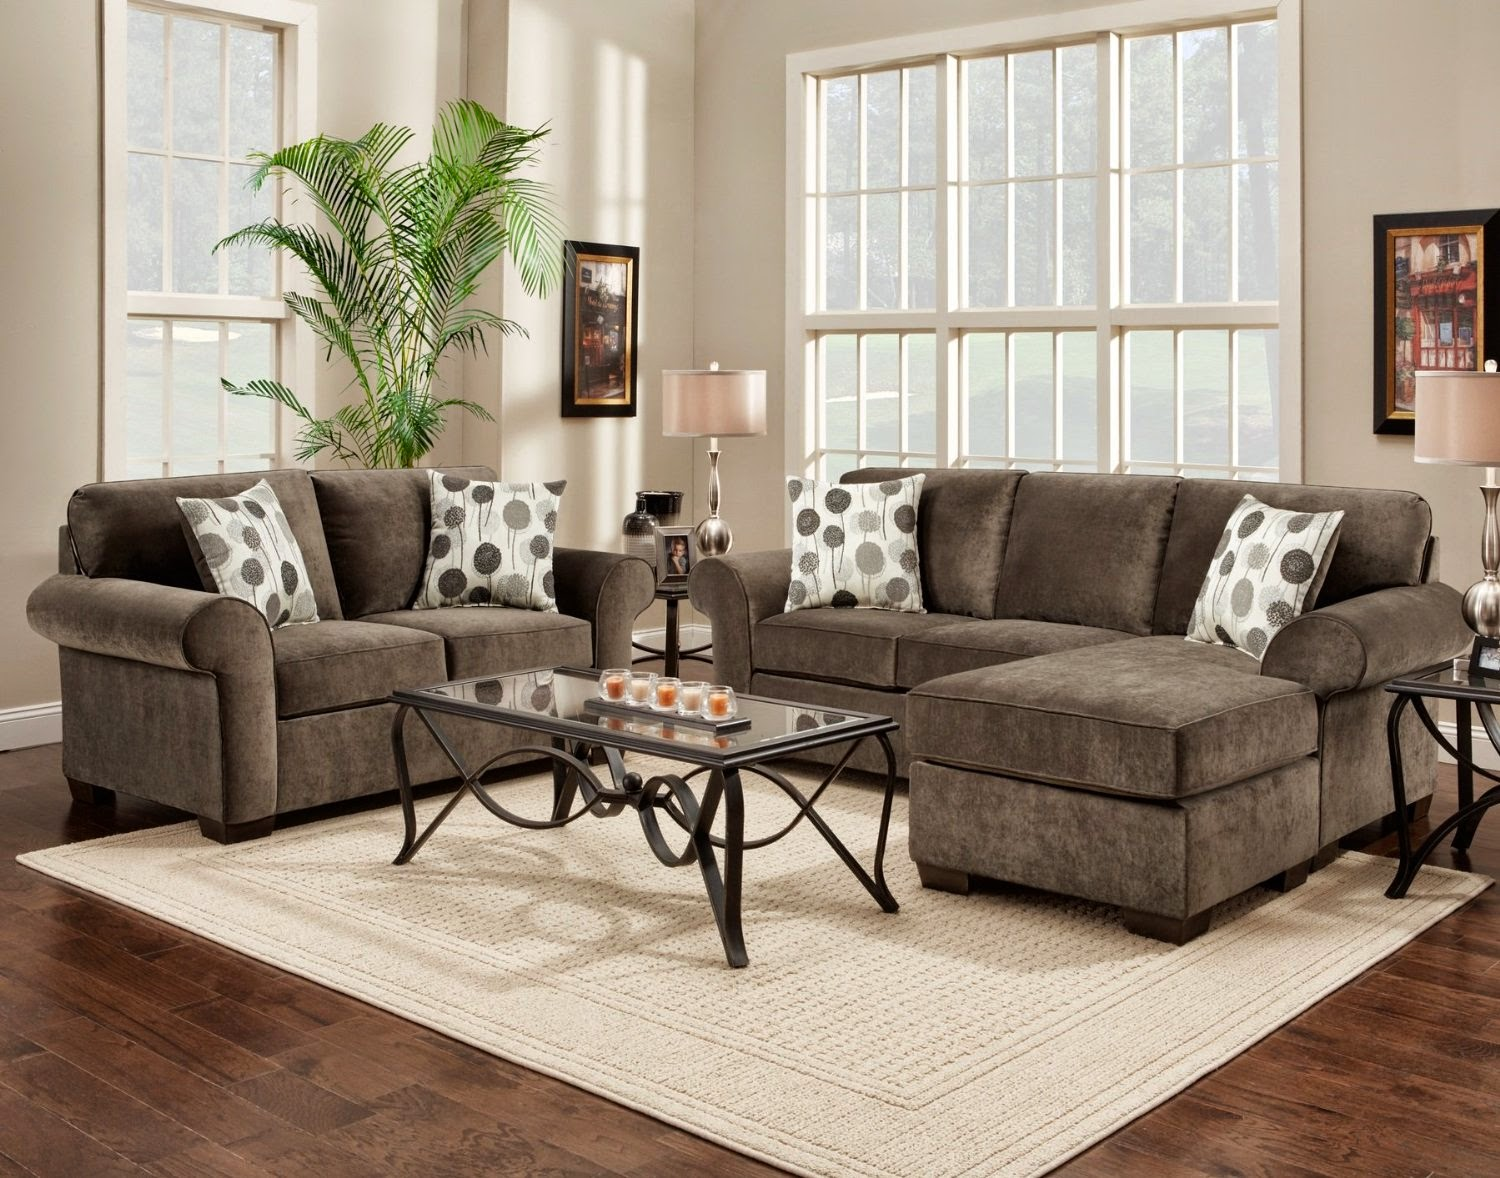 Roundhill Furniture Fabric Sectional Sofa and Loveseat Set with Pillows, Elizabeth Ash